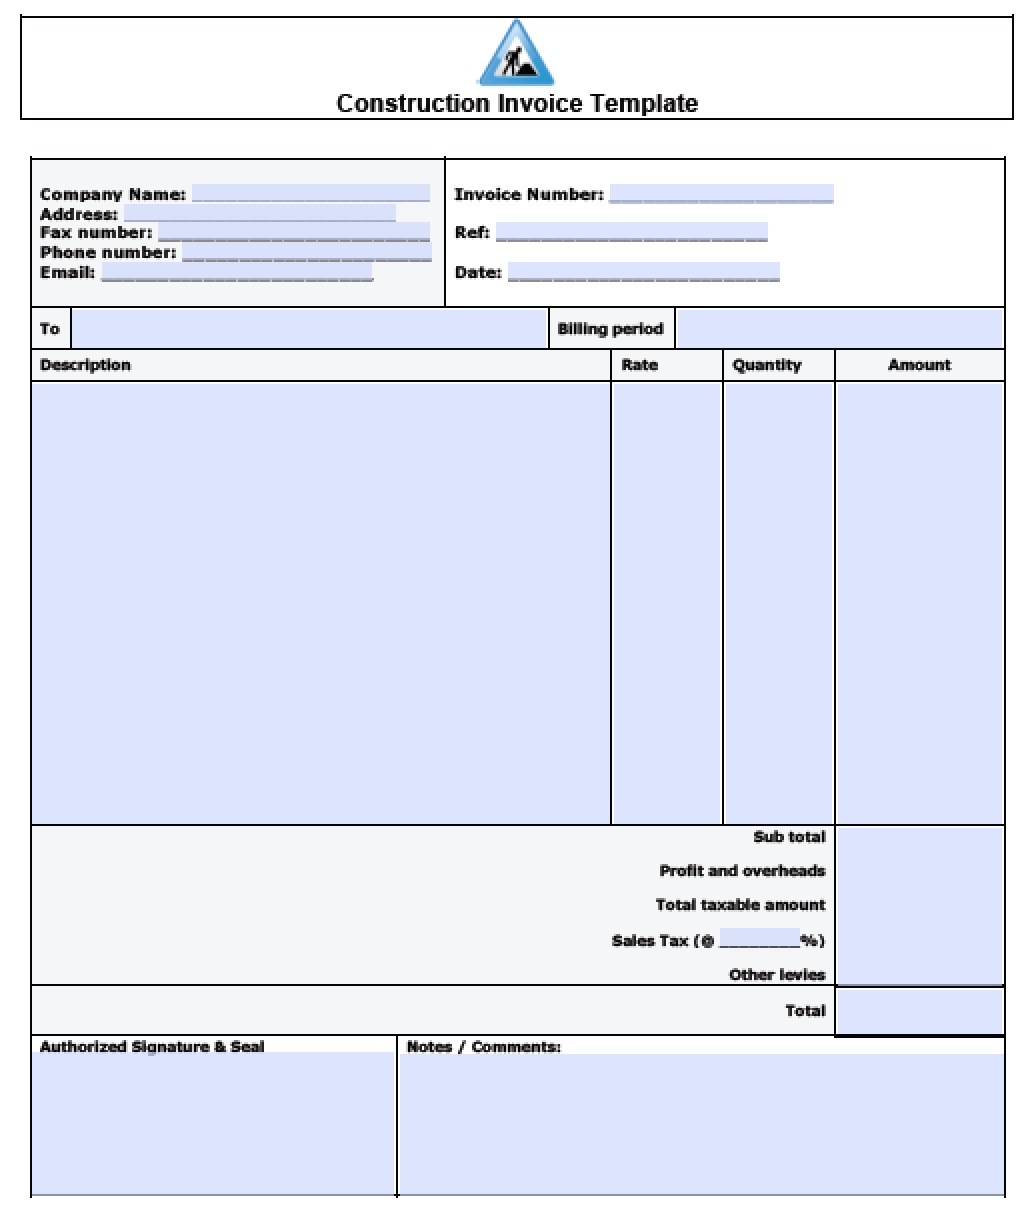 Free Construction Invoice Template Excel PDF Word Doc - Receipt invoice template free